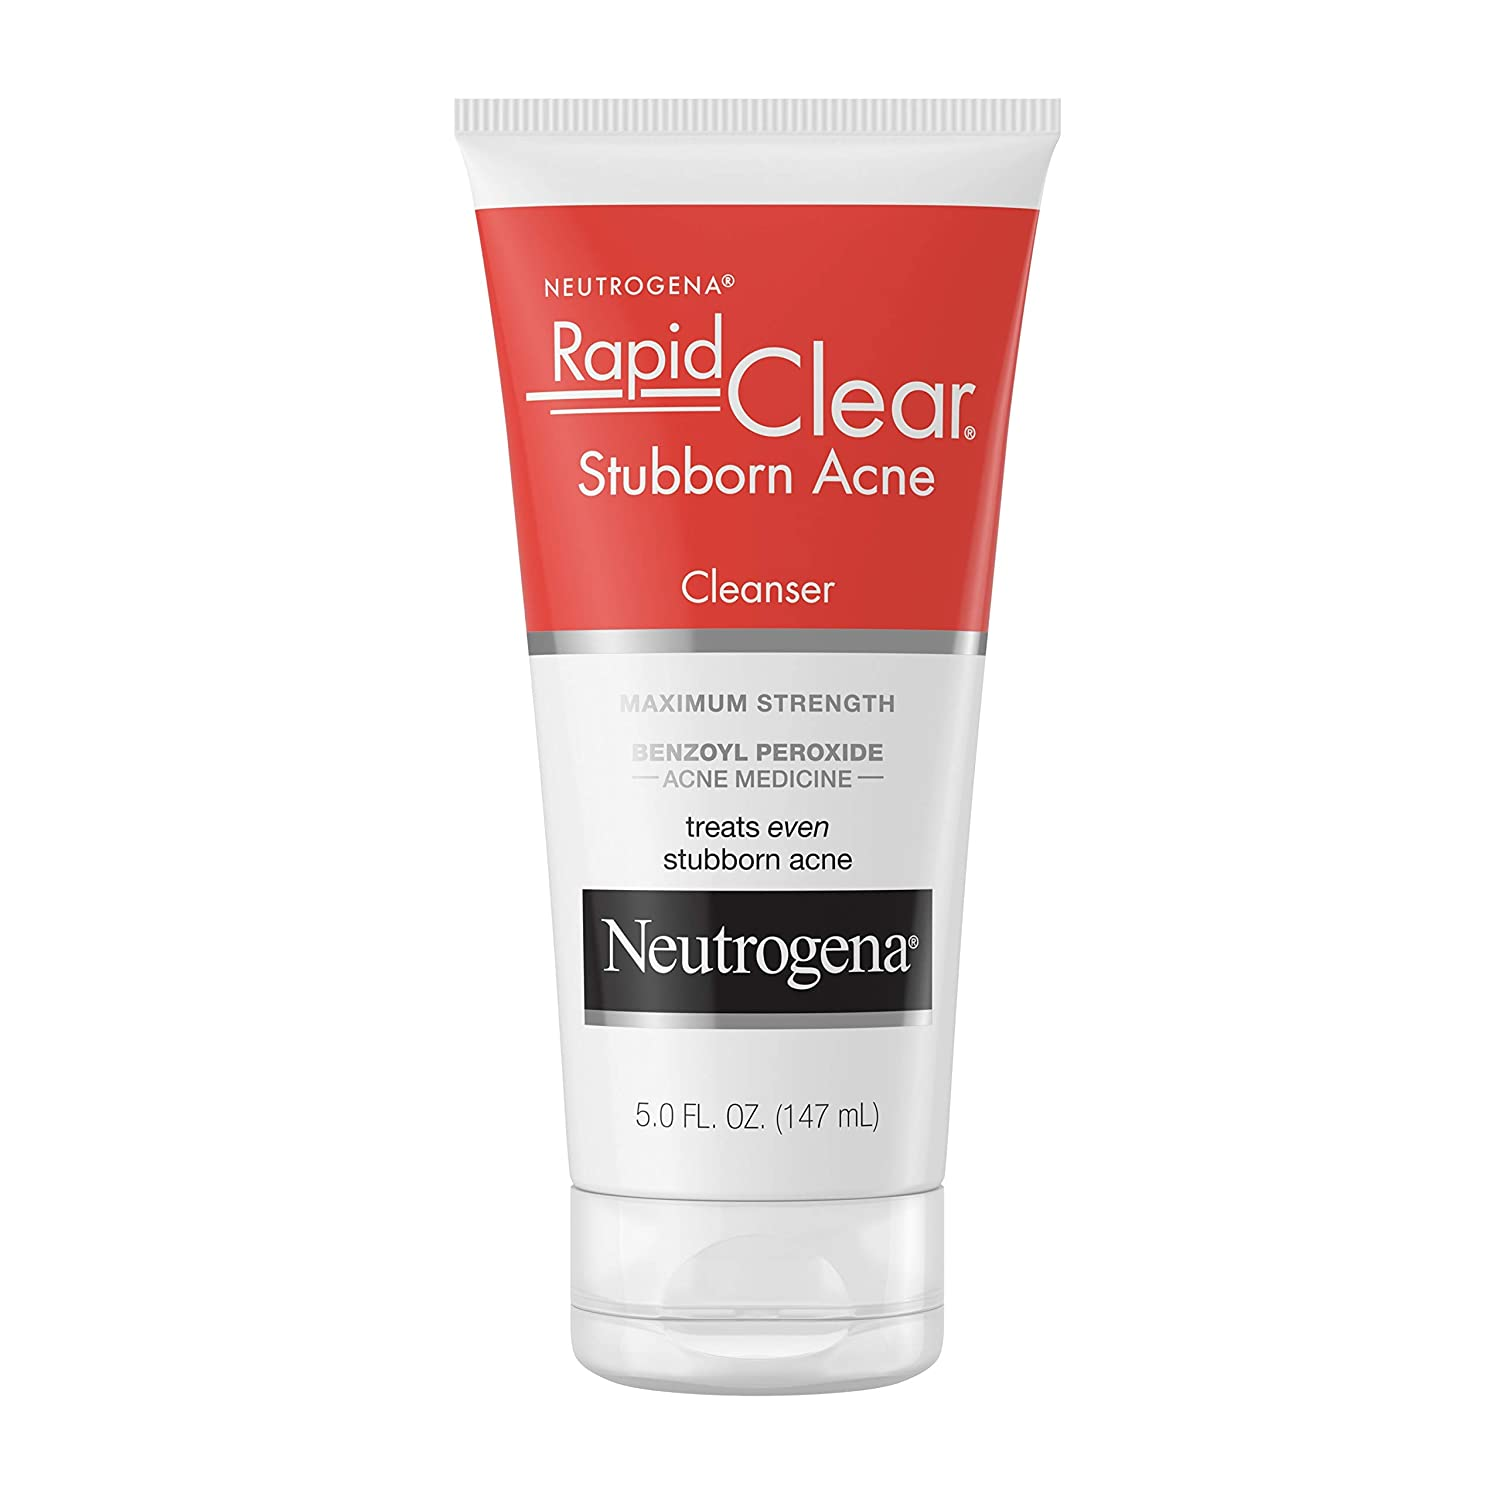 Neutrogena Store Rapid Clear Stubborn Acne Face OFFicial shop with Wash Benzoyl P 10